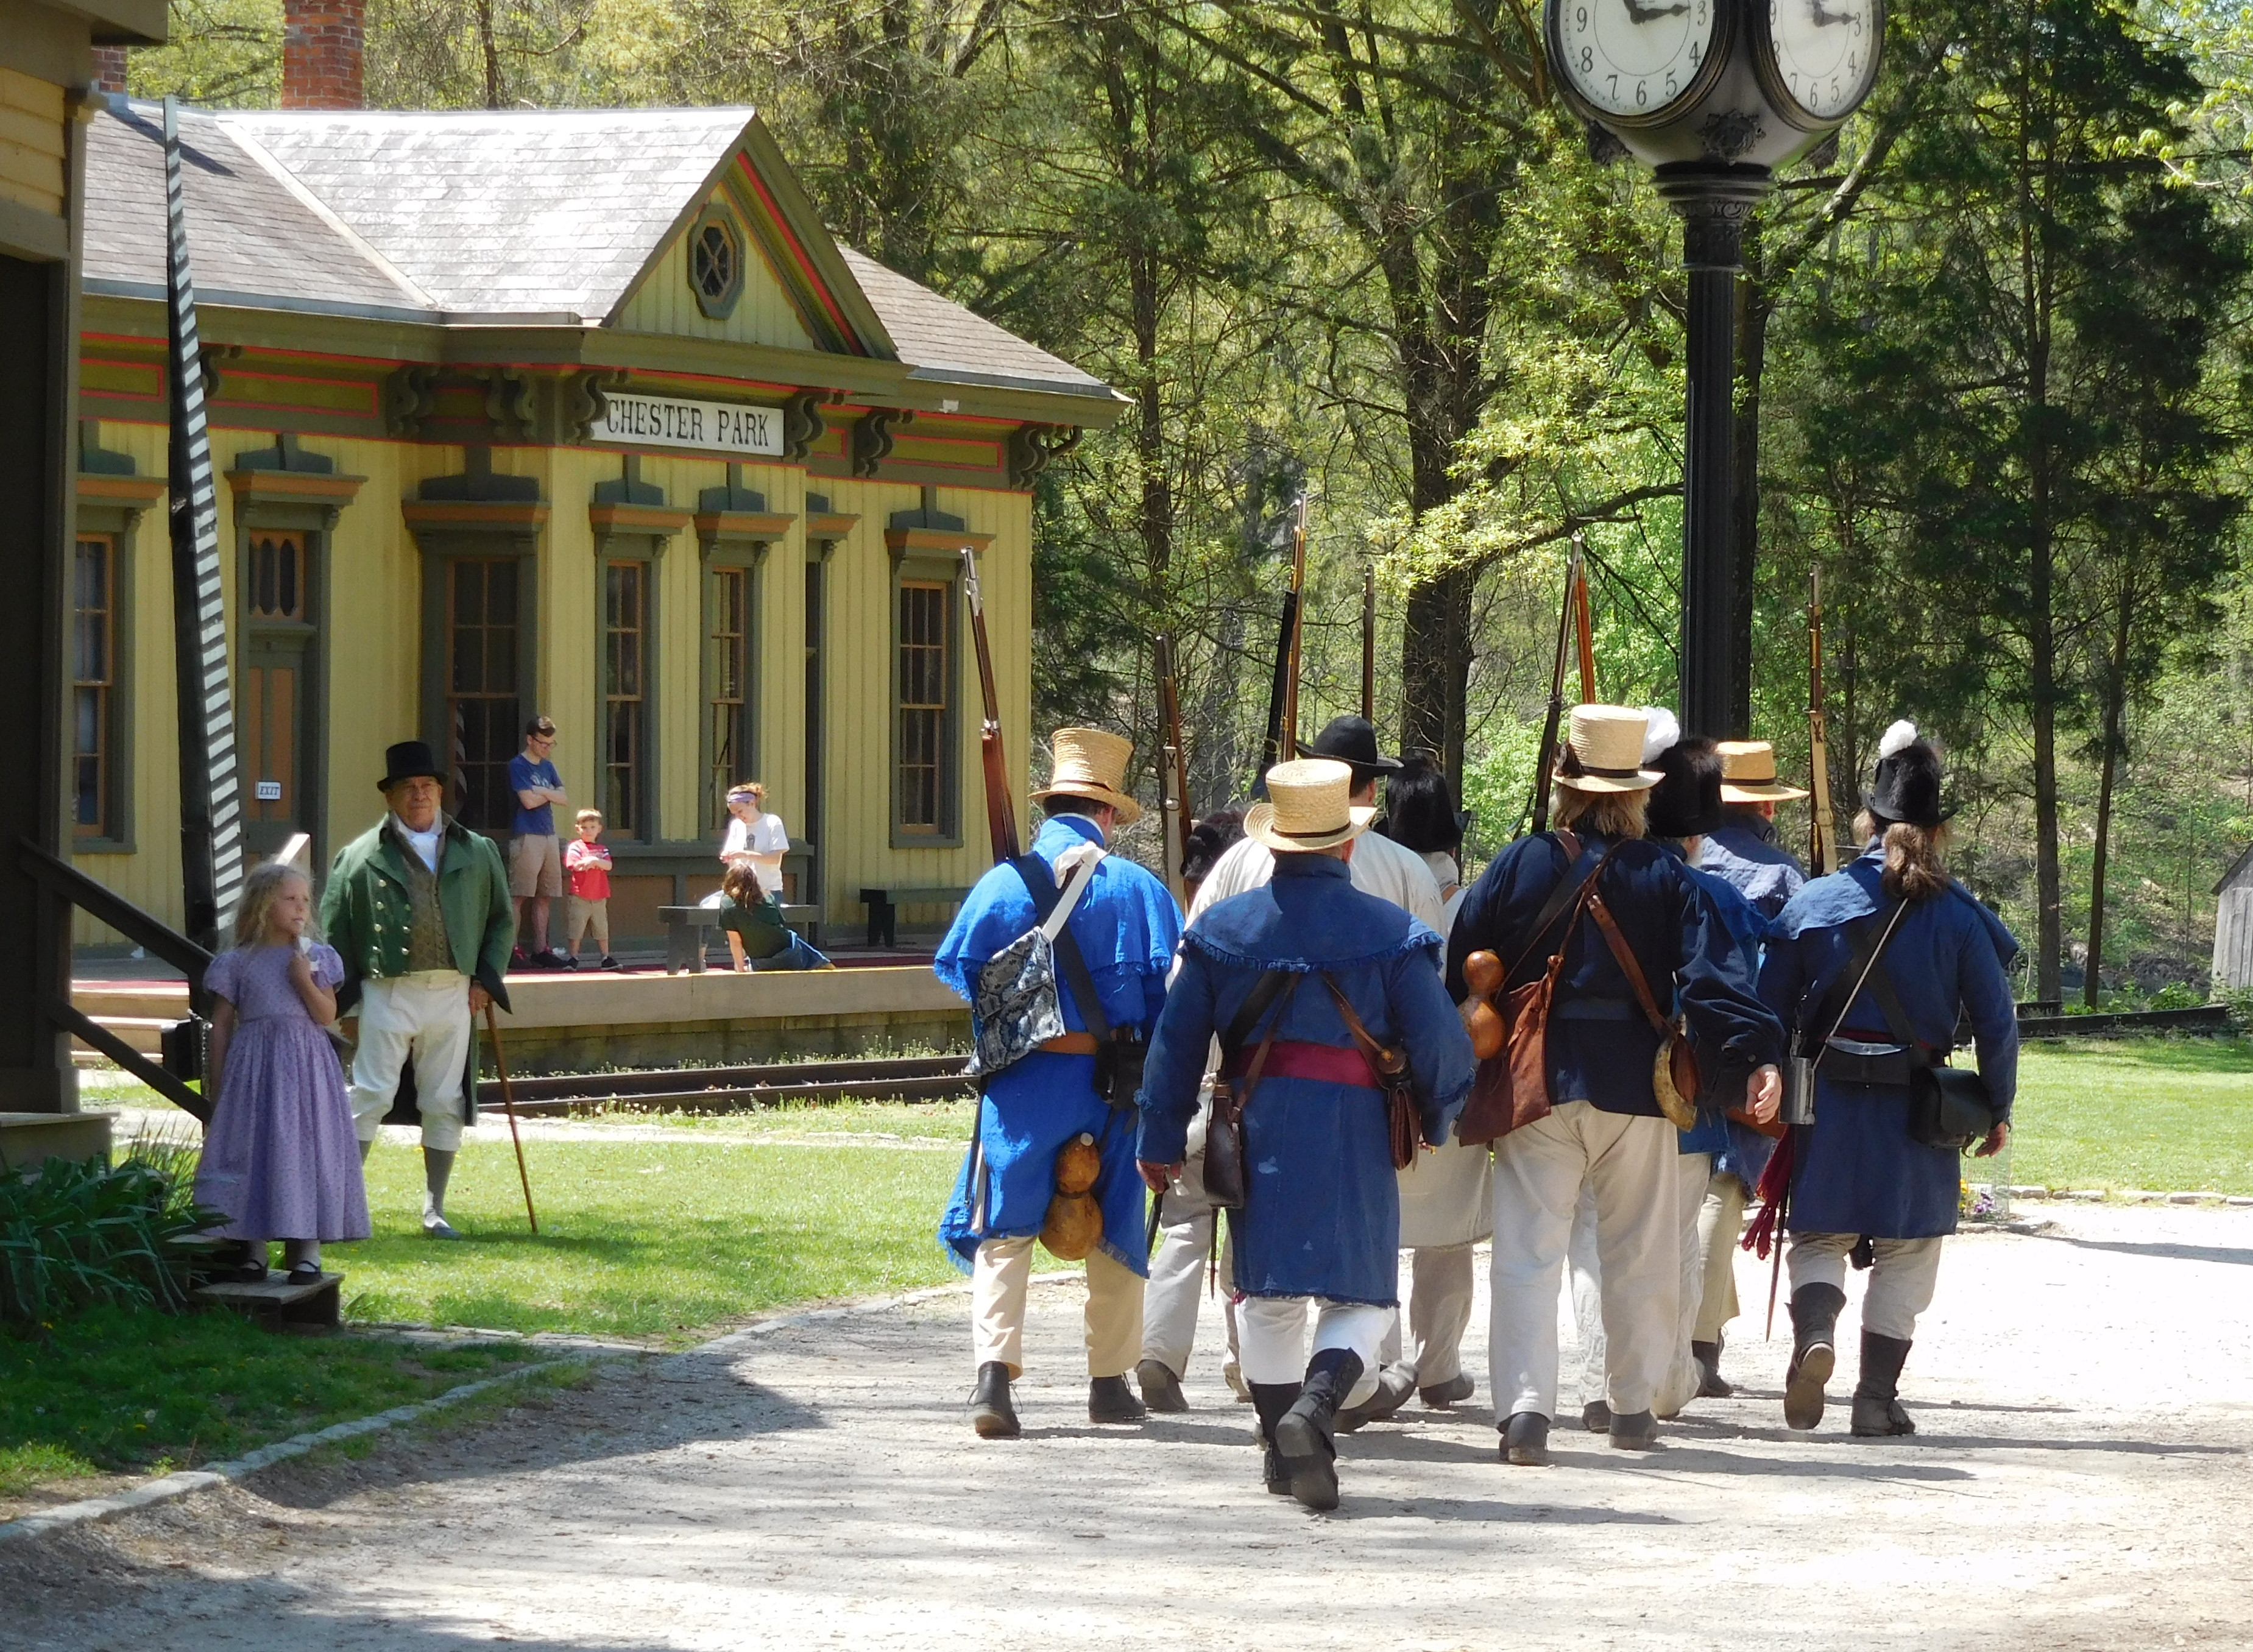 Spring in Early Cincinnati: An 1803 Muster and Social - Heritage Village Museum